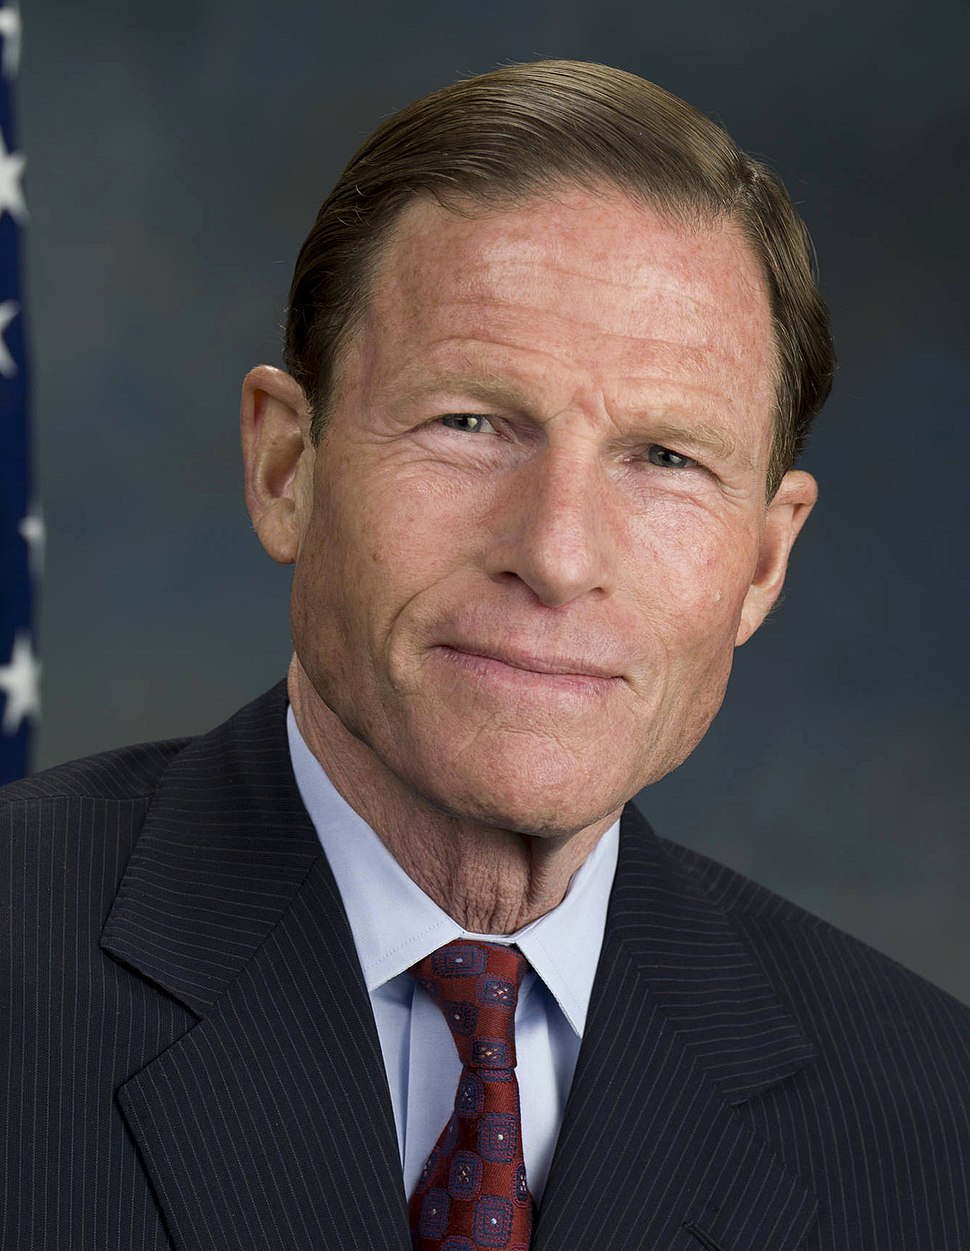 Richard Blumenthal Official Portrait (cropped)